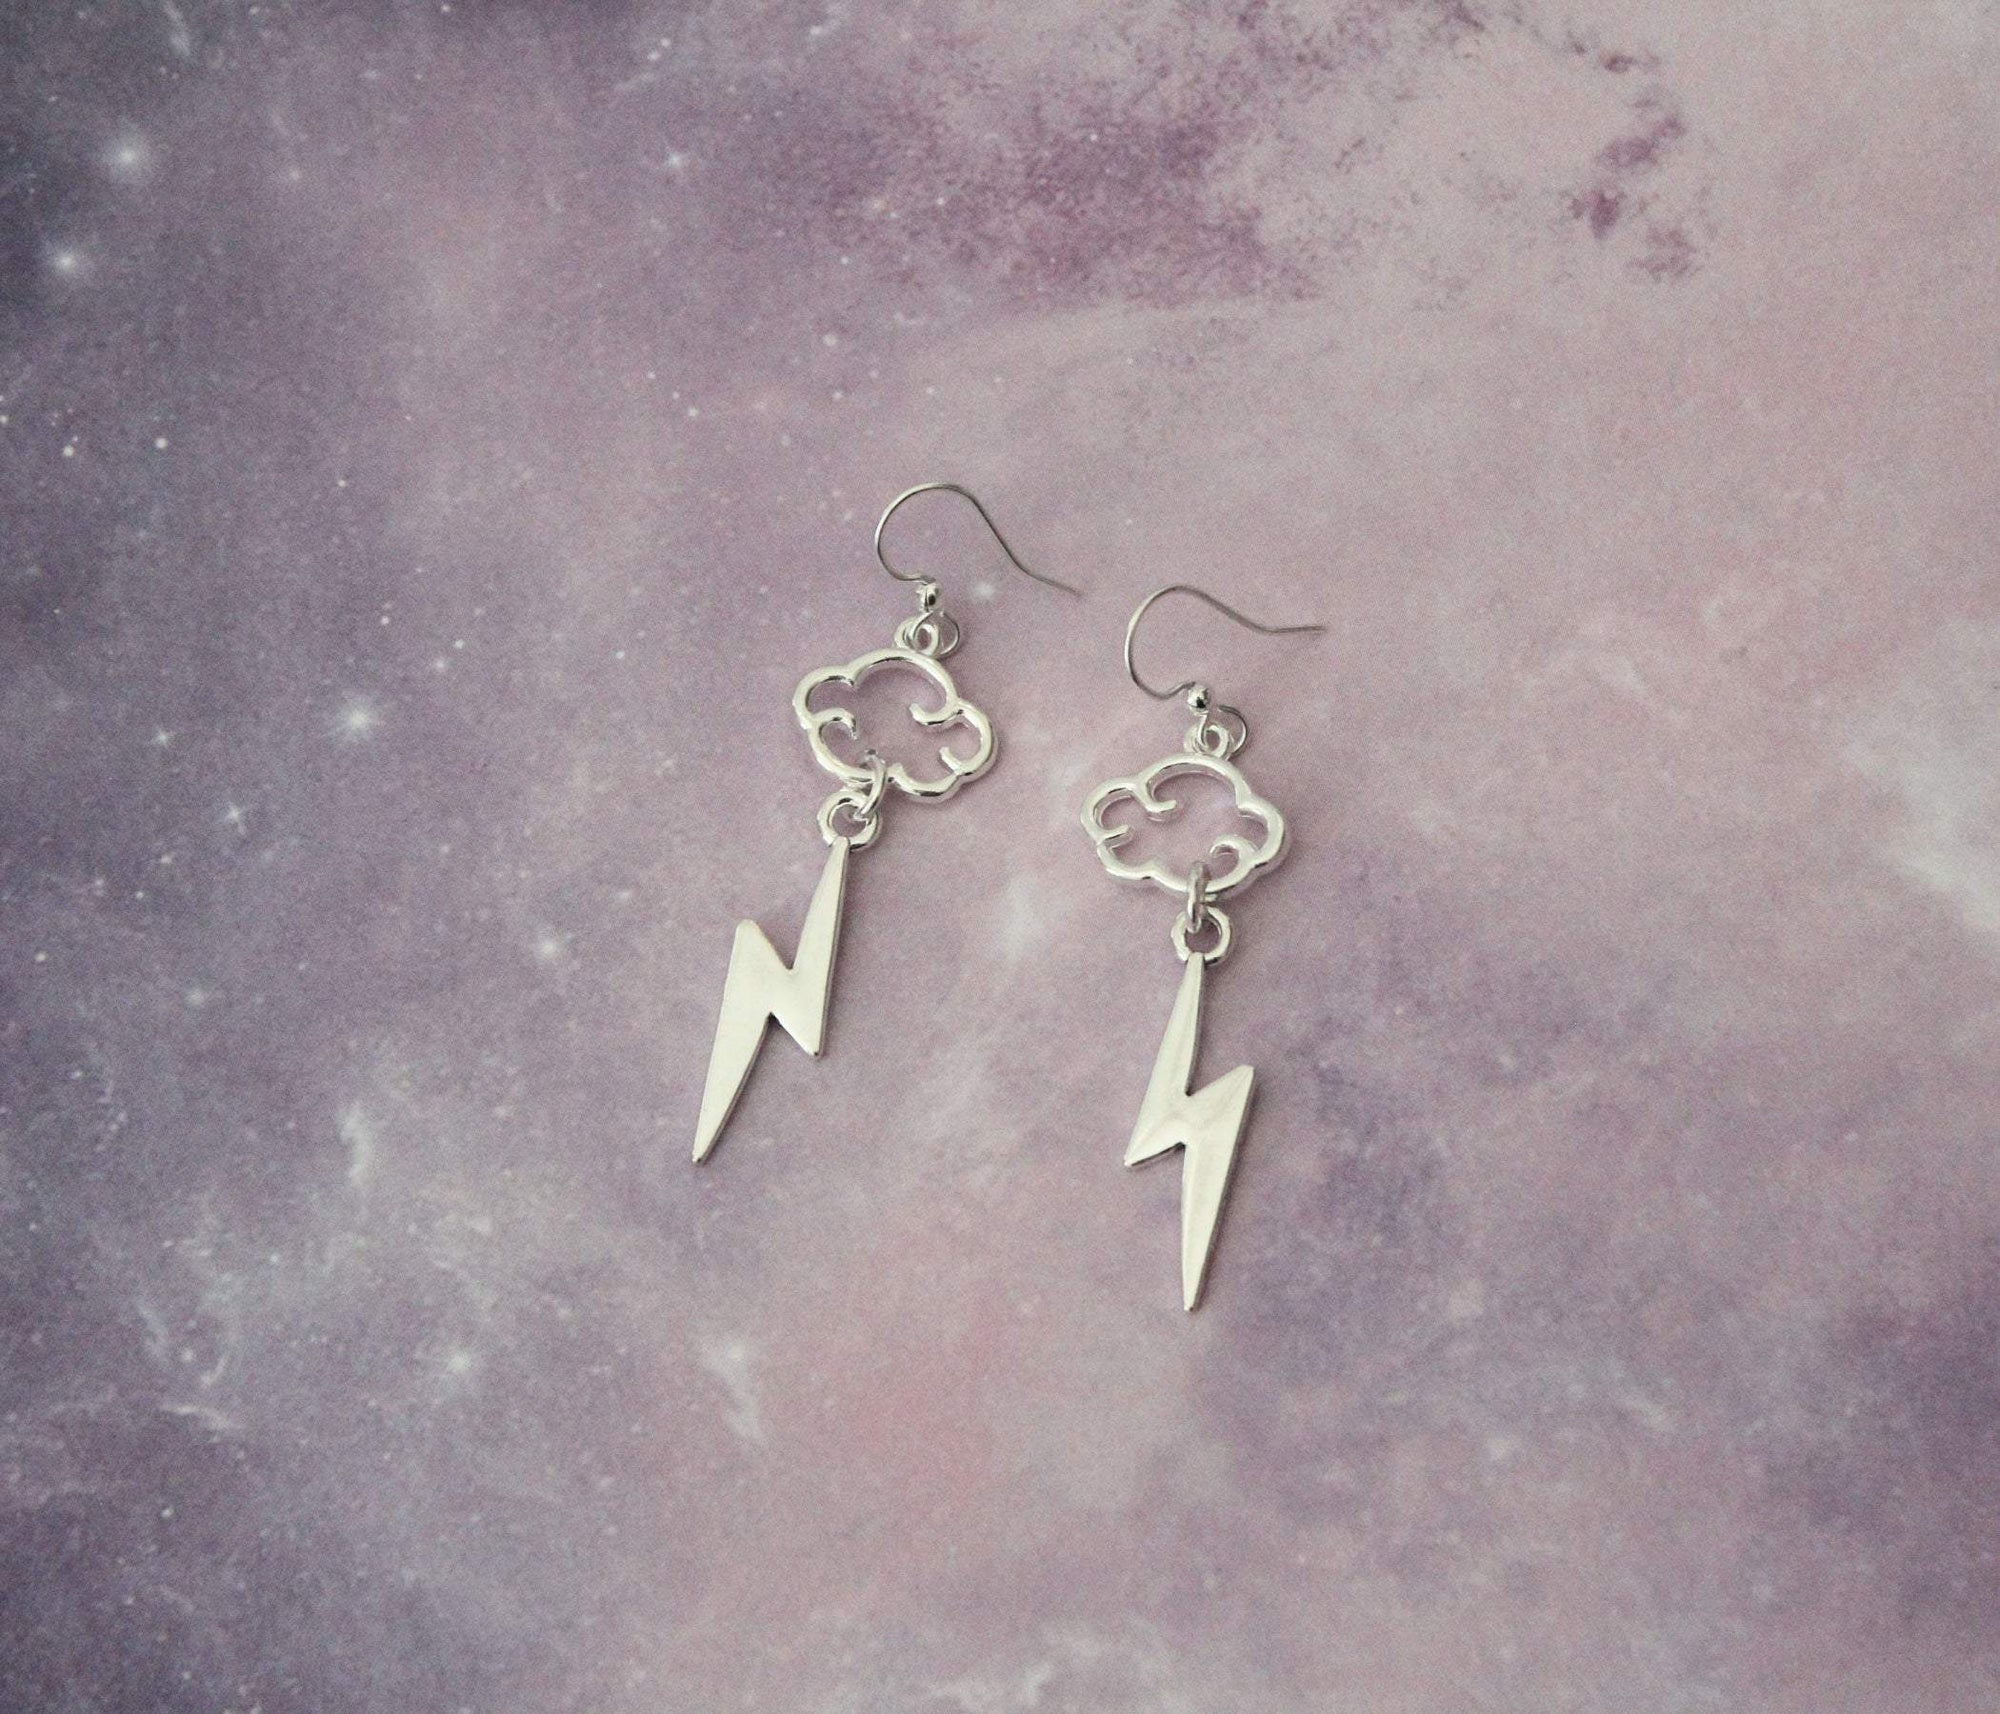 Ancient Greek Zeus Lightning Cloud Earrings Ancient Treasures Ancientreasures Viking Odin Thor Mjolnir Celtic Ancient Egypt Norse Norse Mythology